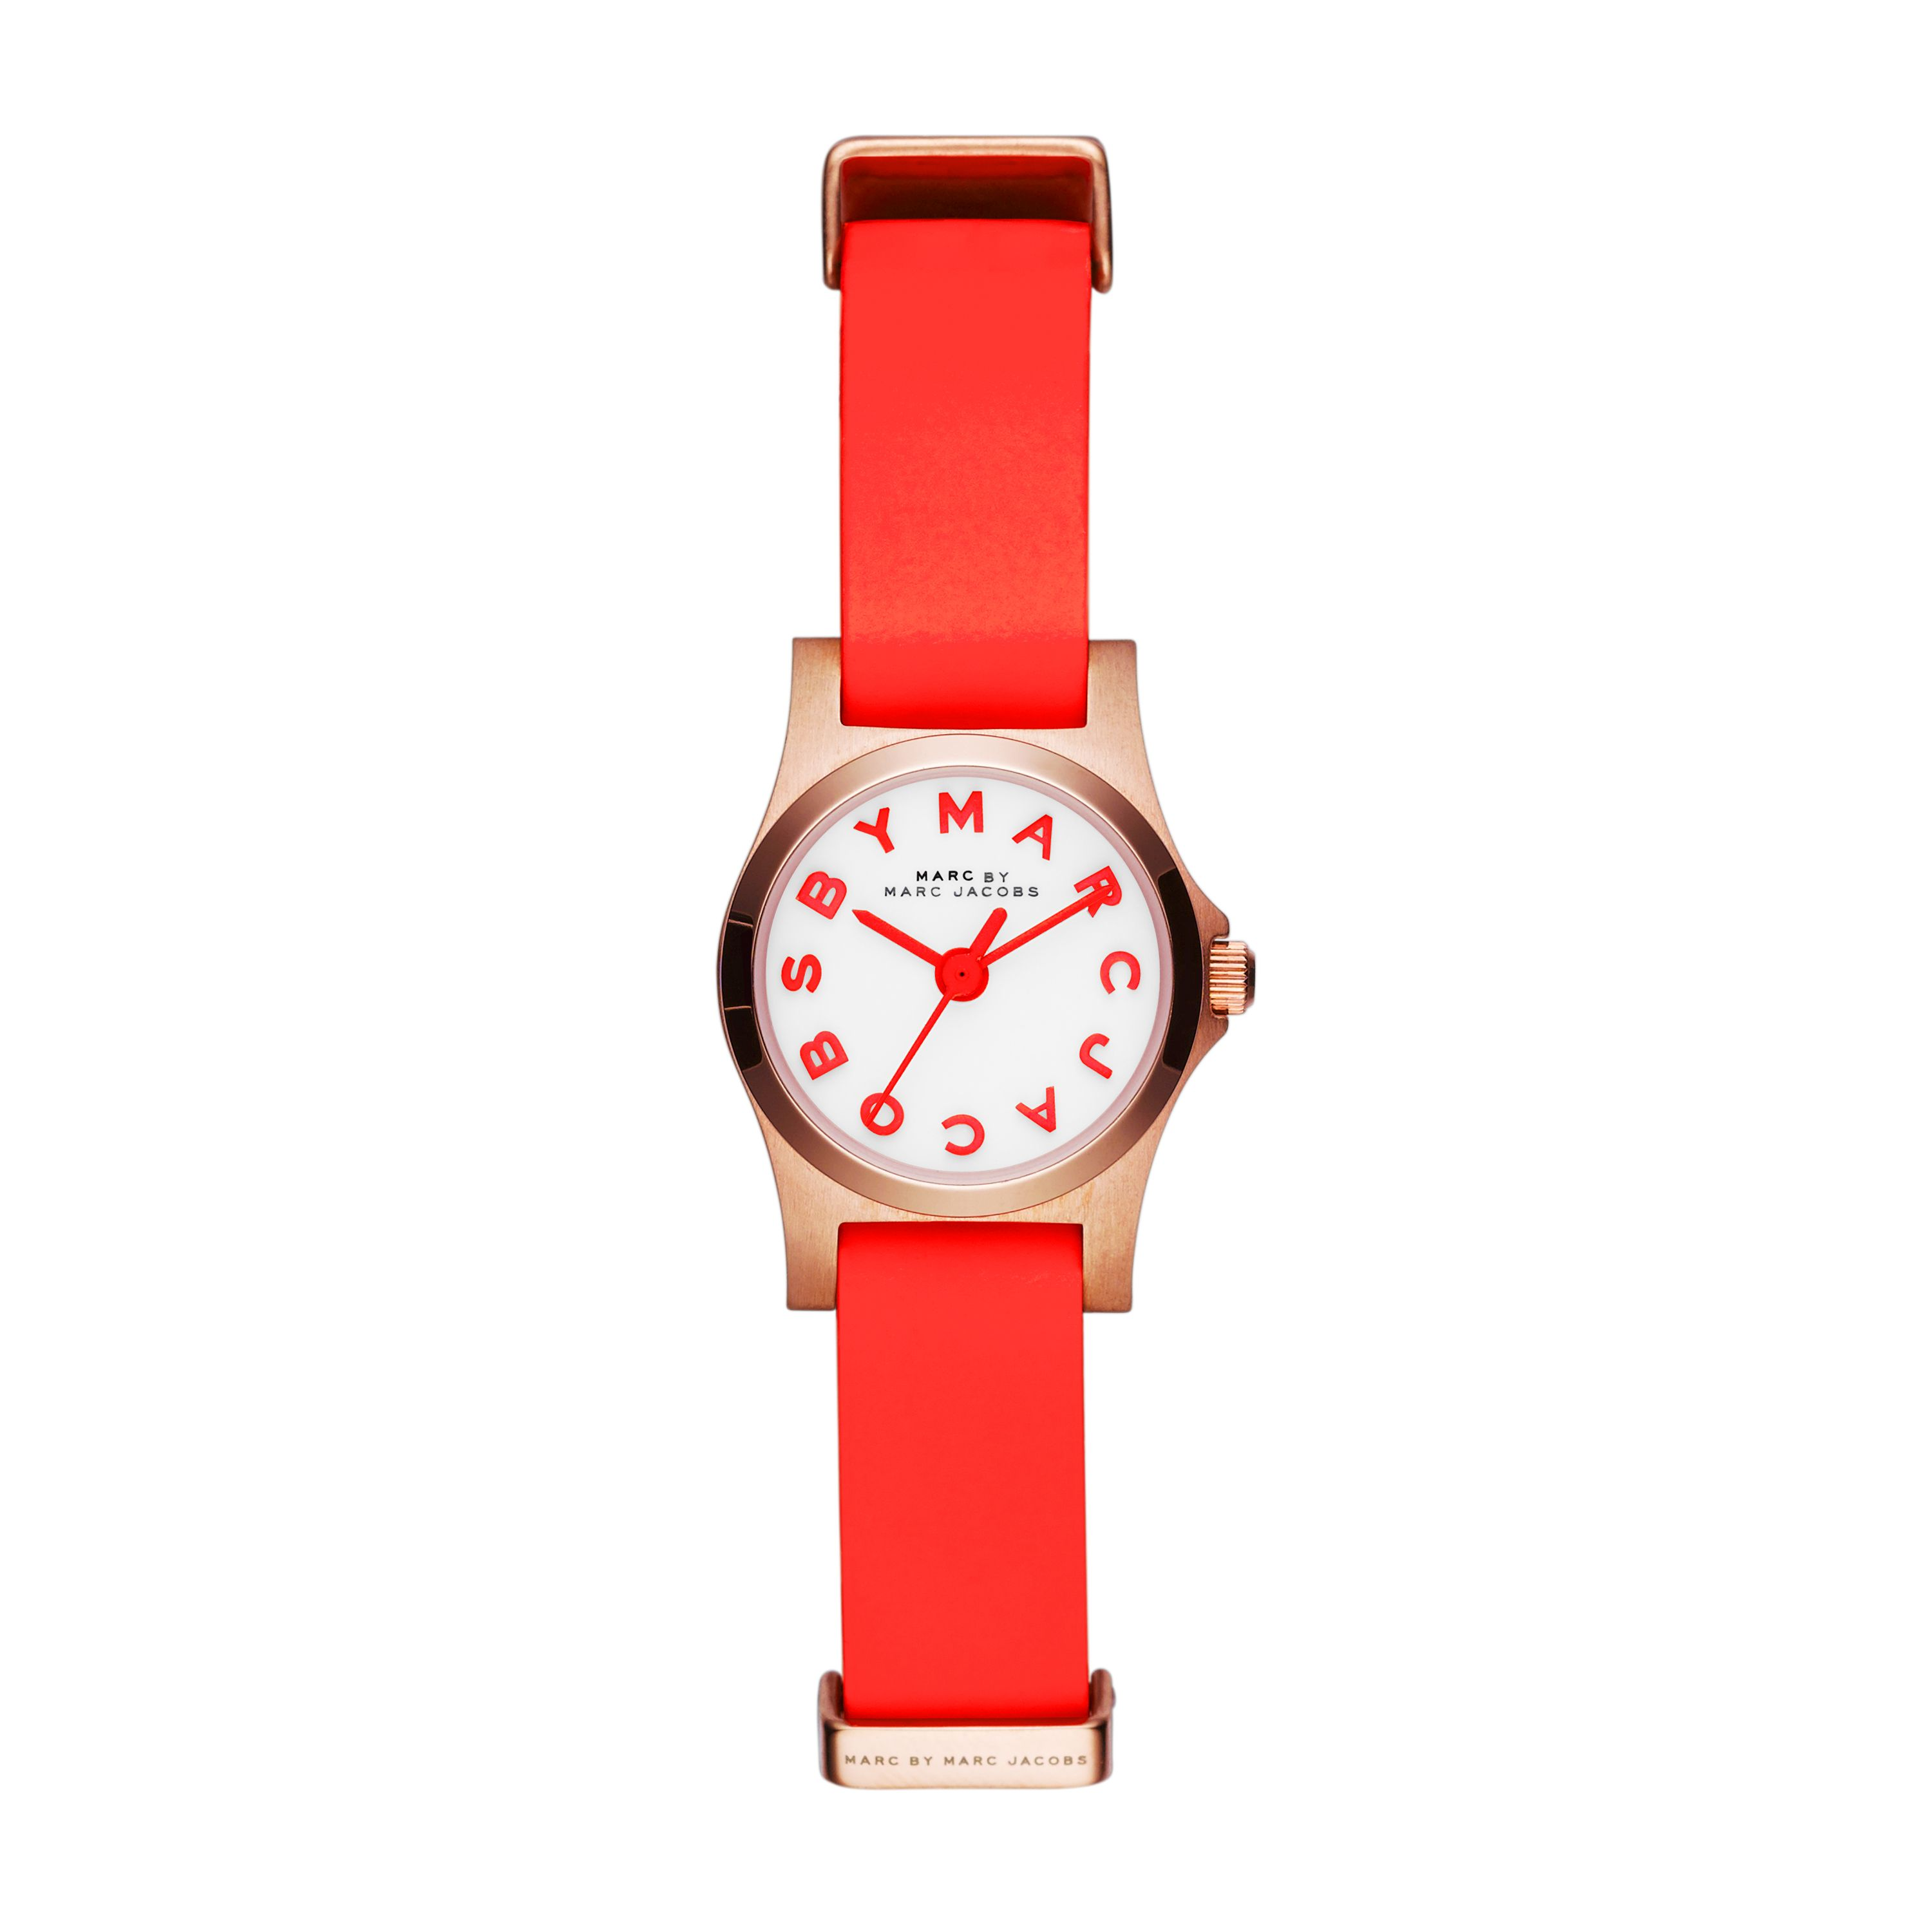 Mbm1315 henry ladies red leather strap watch